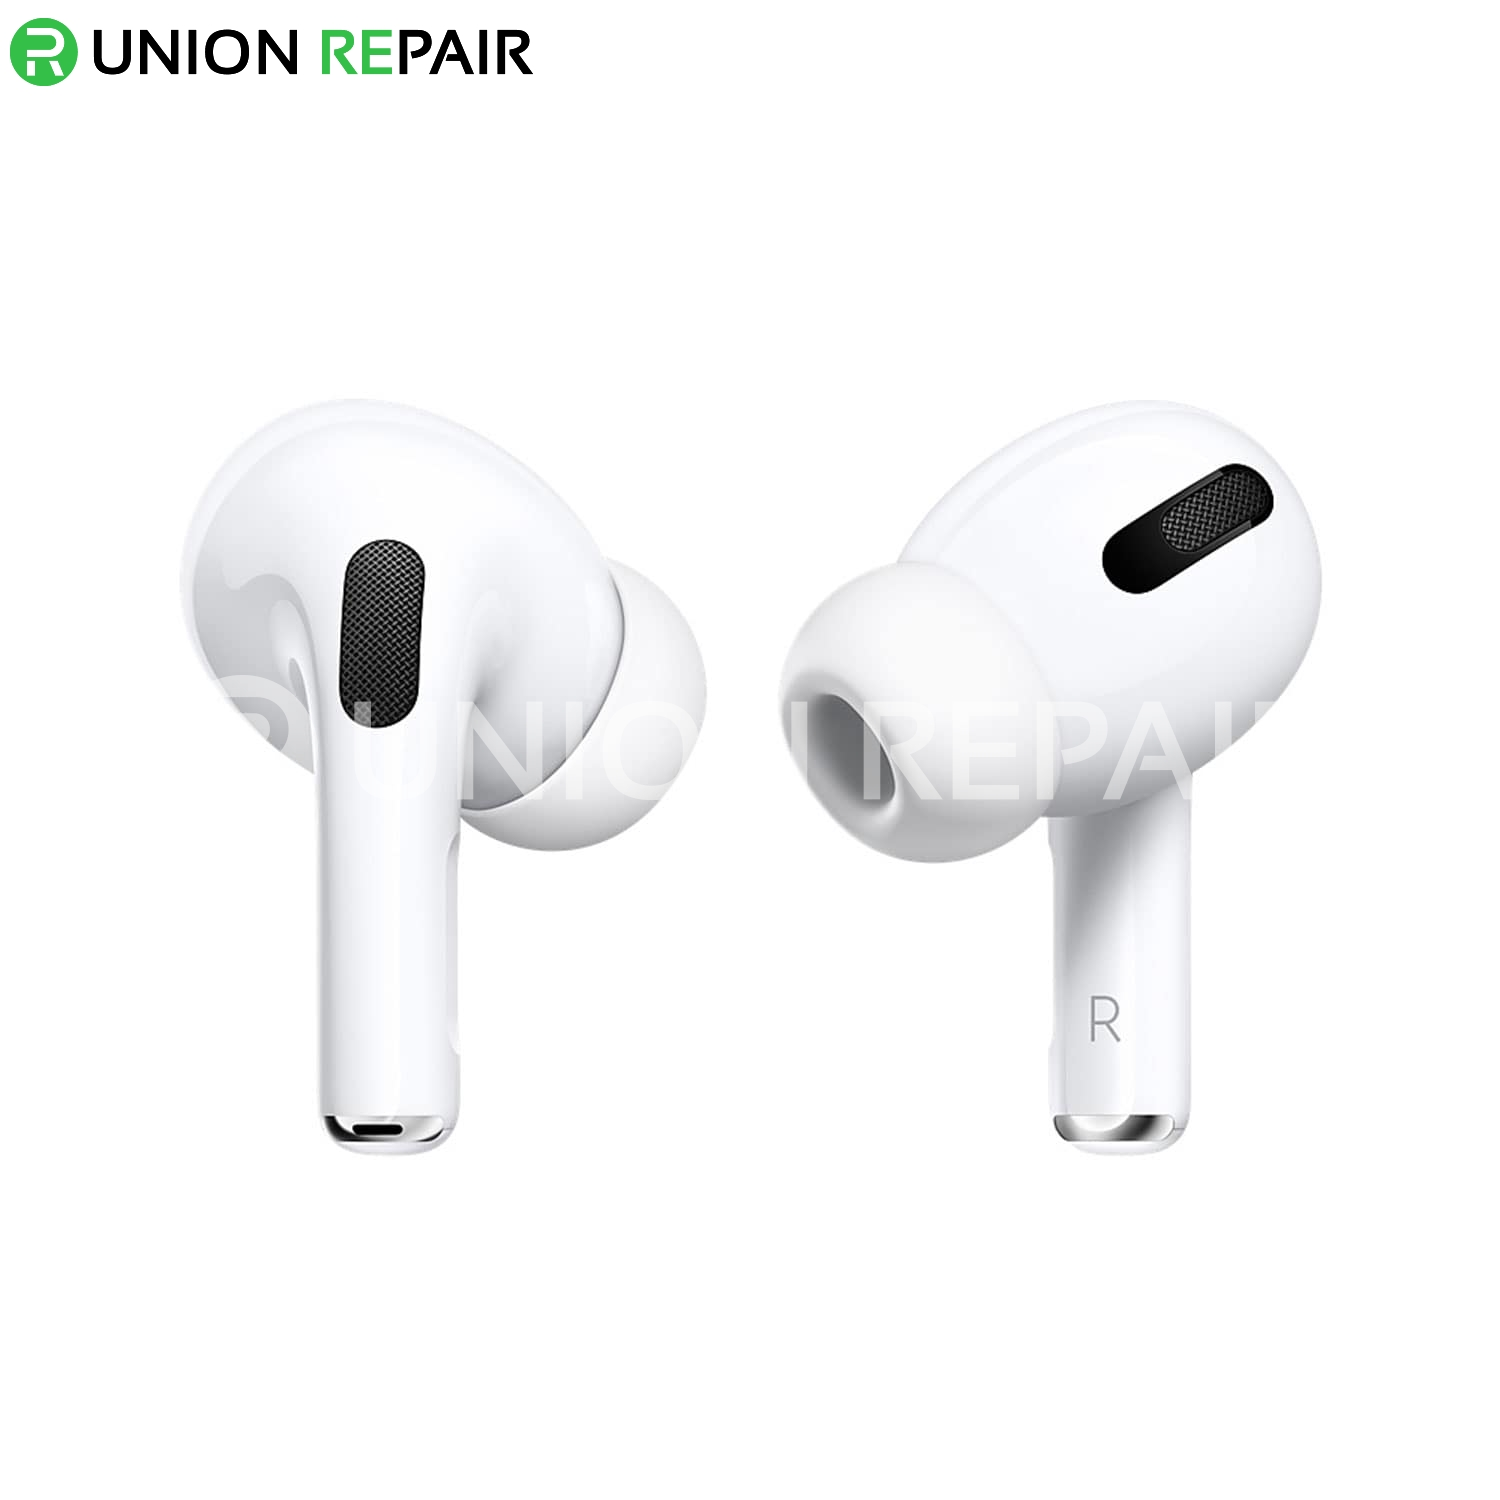 Wireless Headphones for Apple Airpods Pro